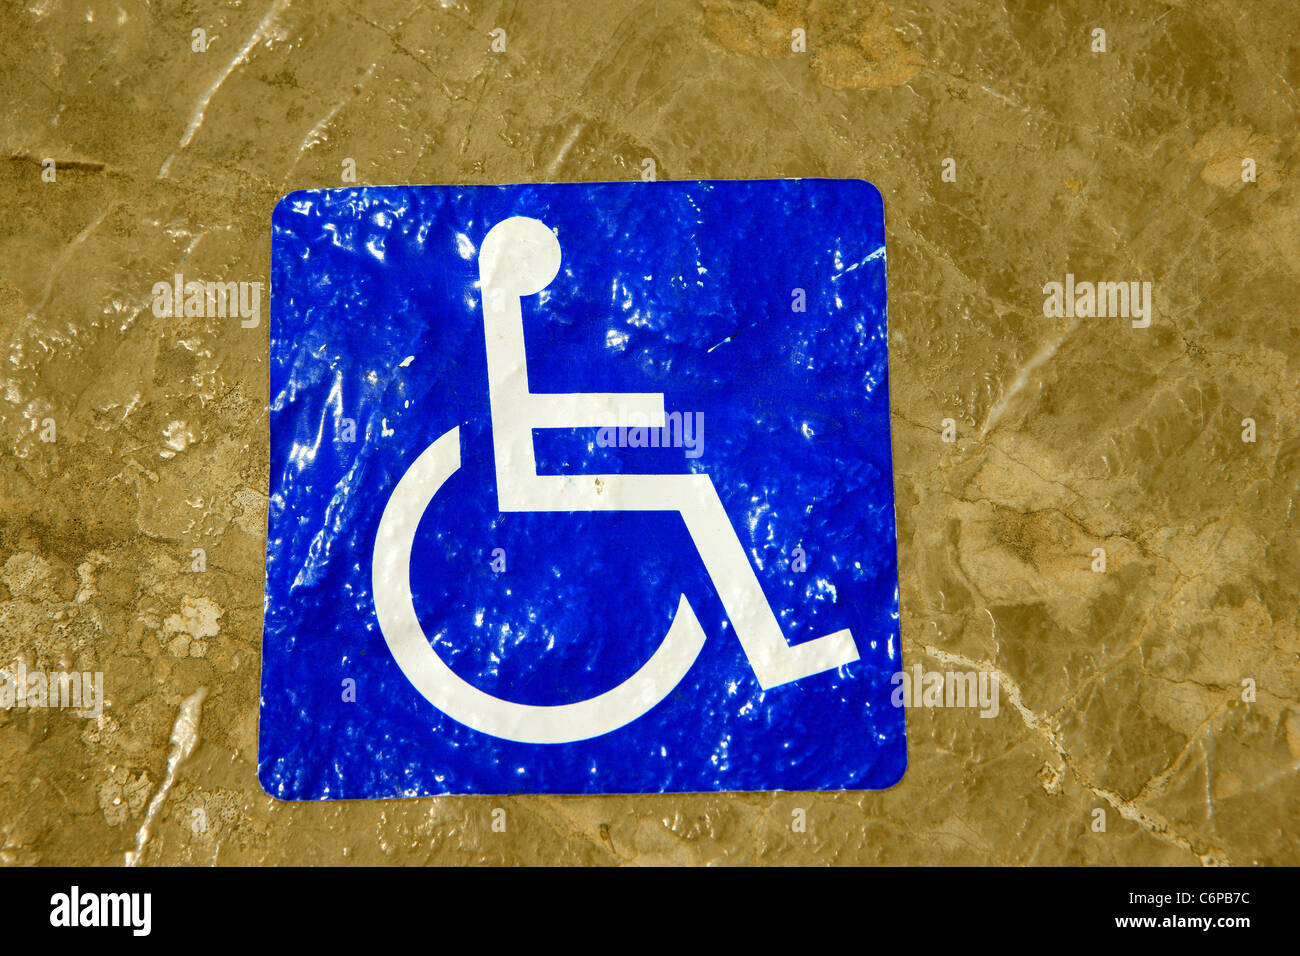 Disabled sign on marble background - Stock Image